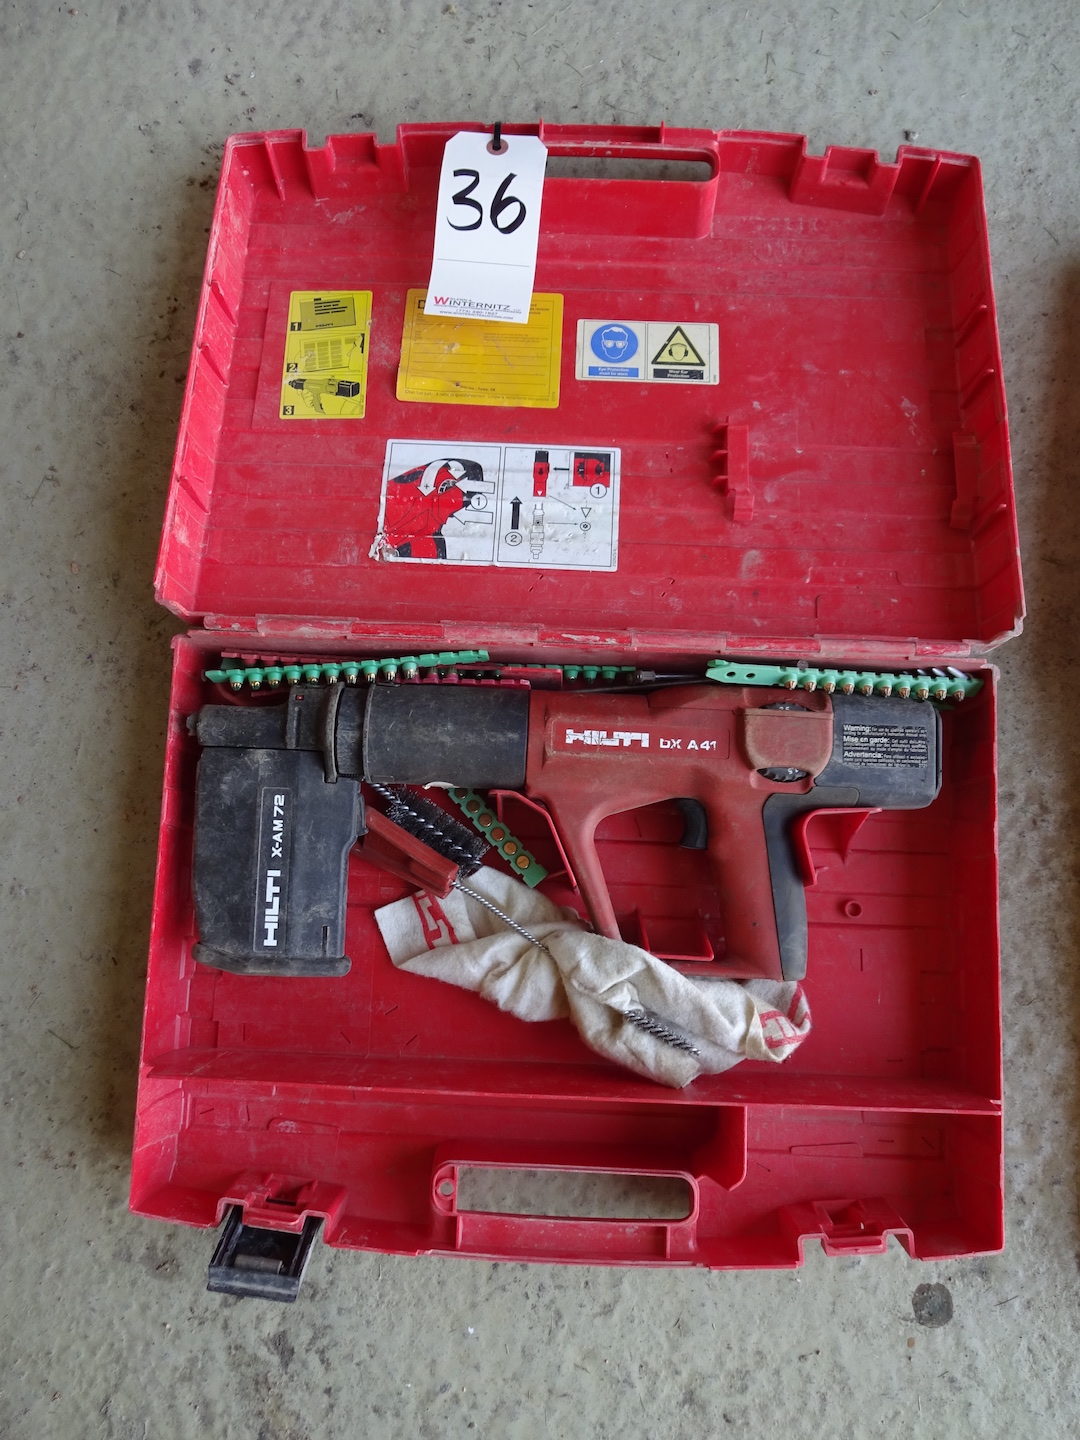 Lot 36 - HILTI DX A41 POWDER ACTUATED FASTENER WITH CASE